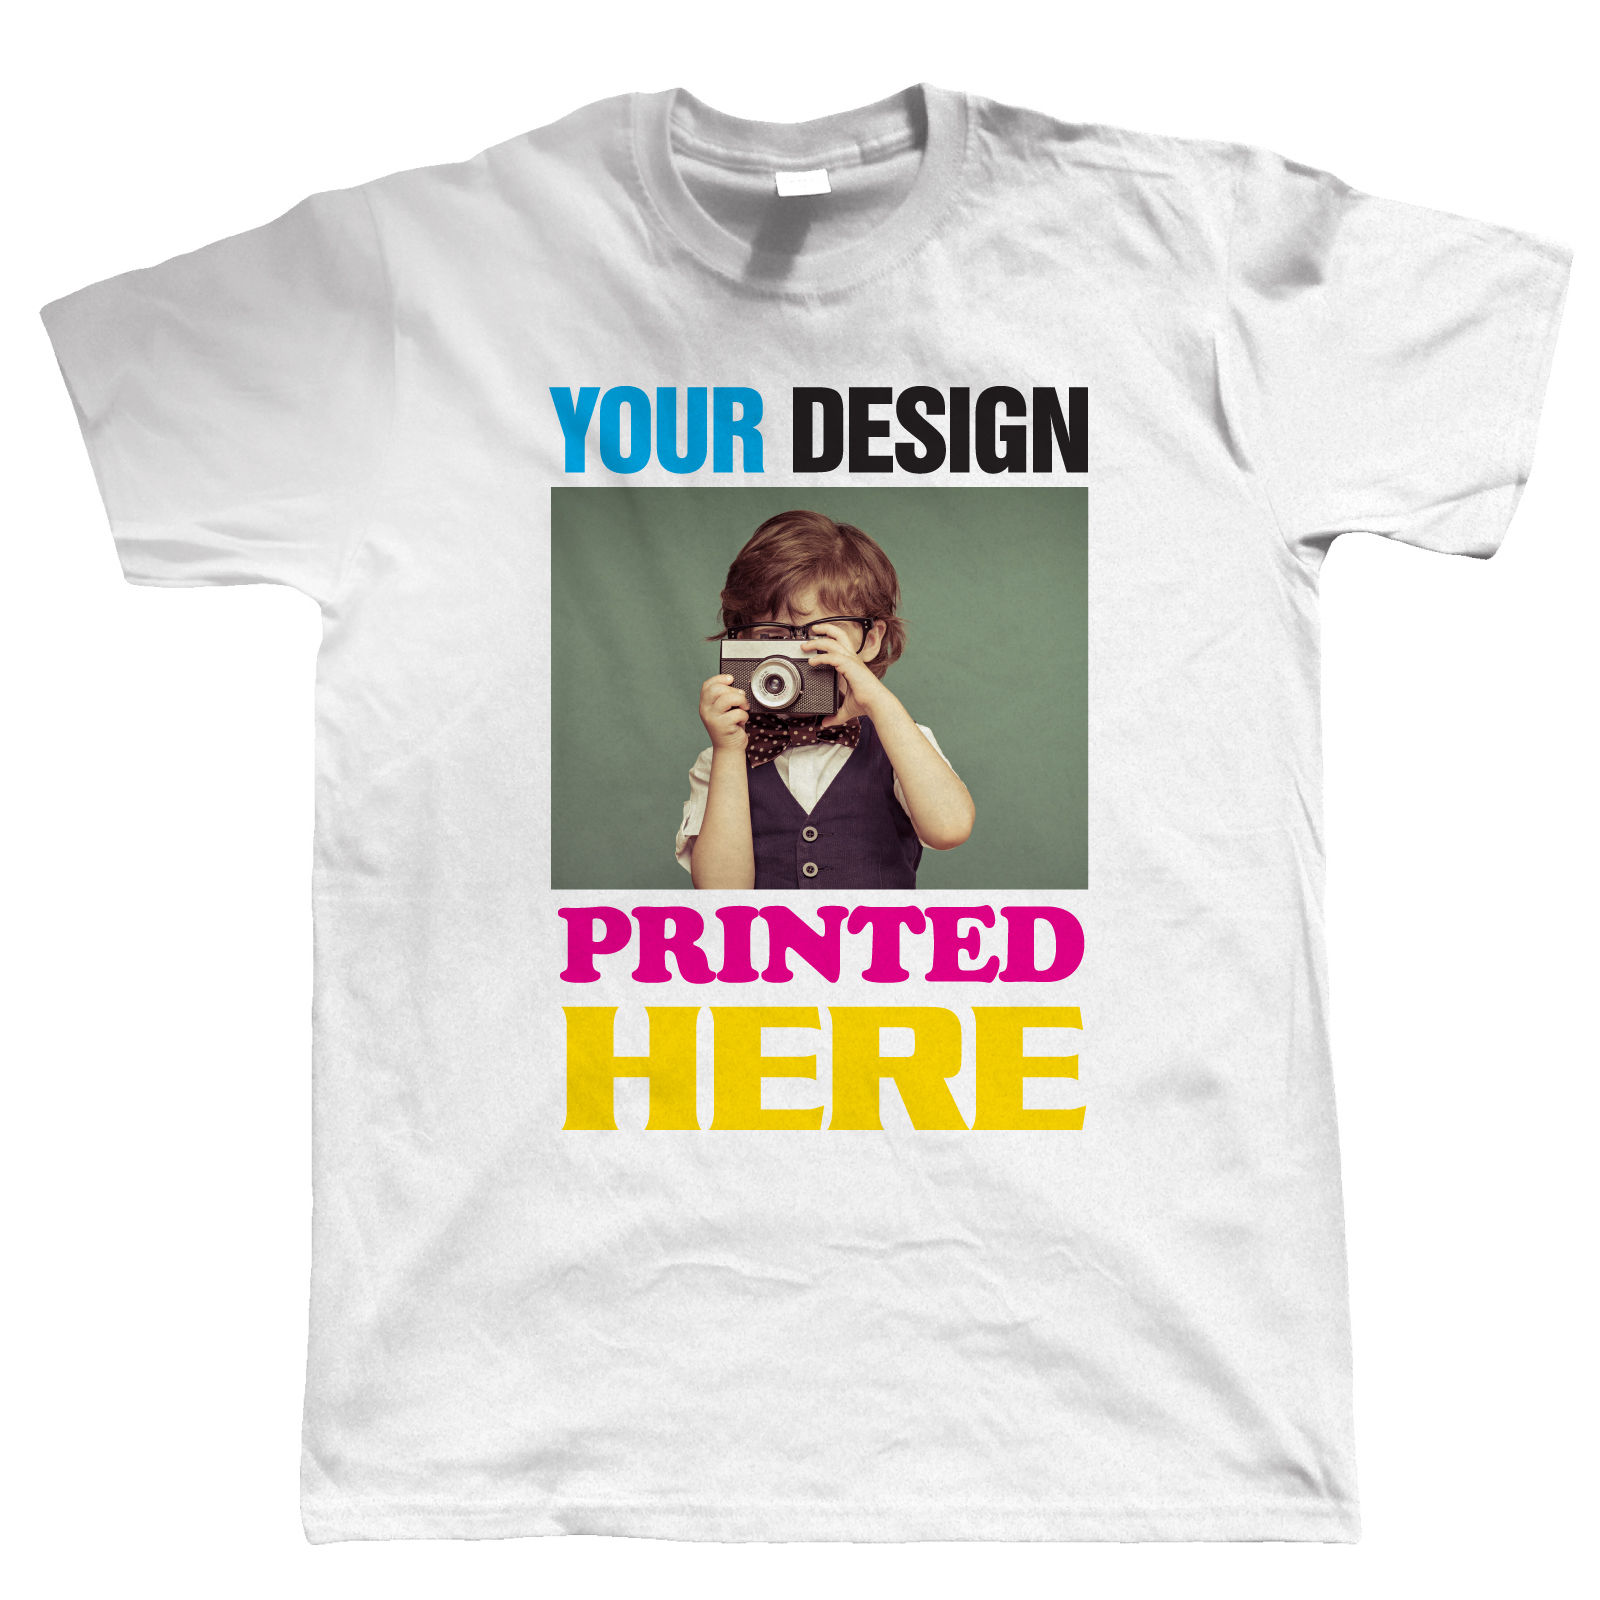 Design your own ems t-shirt